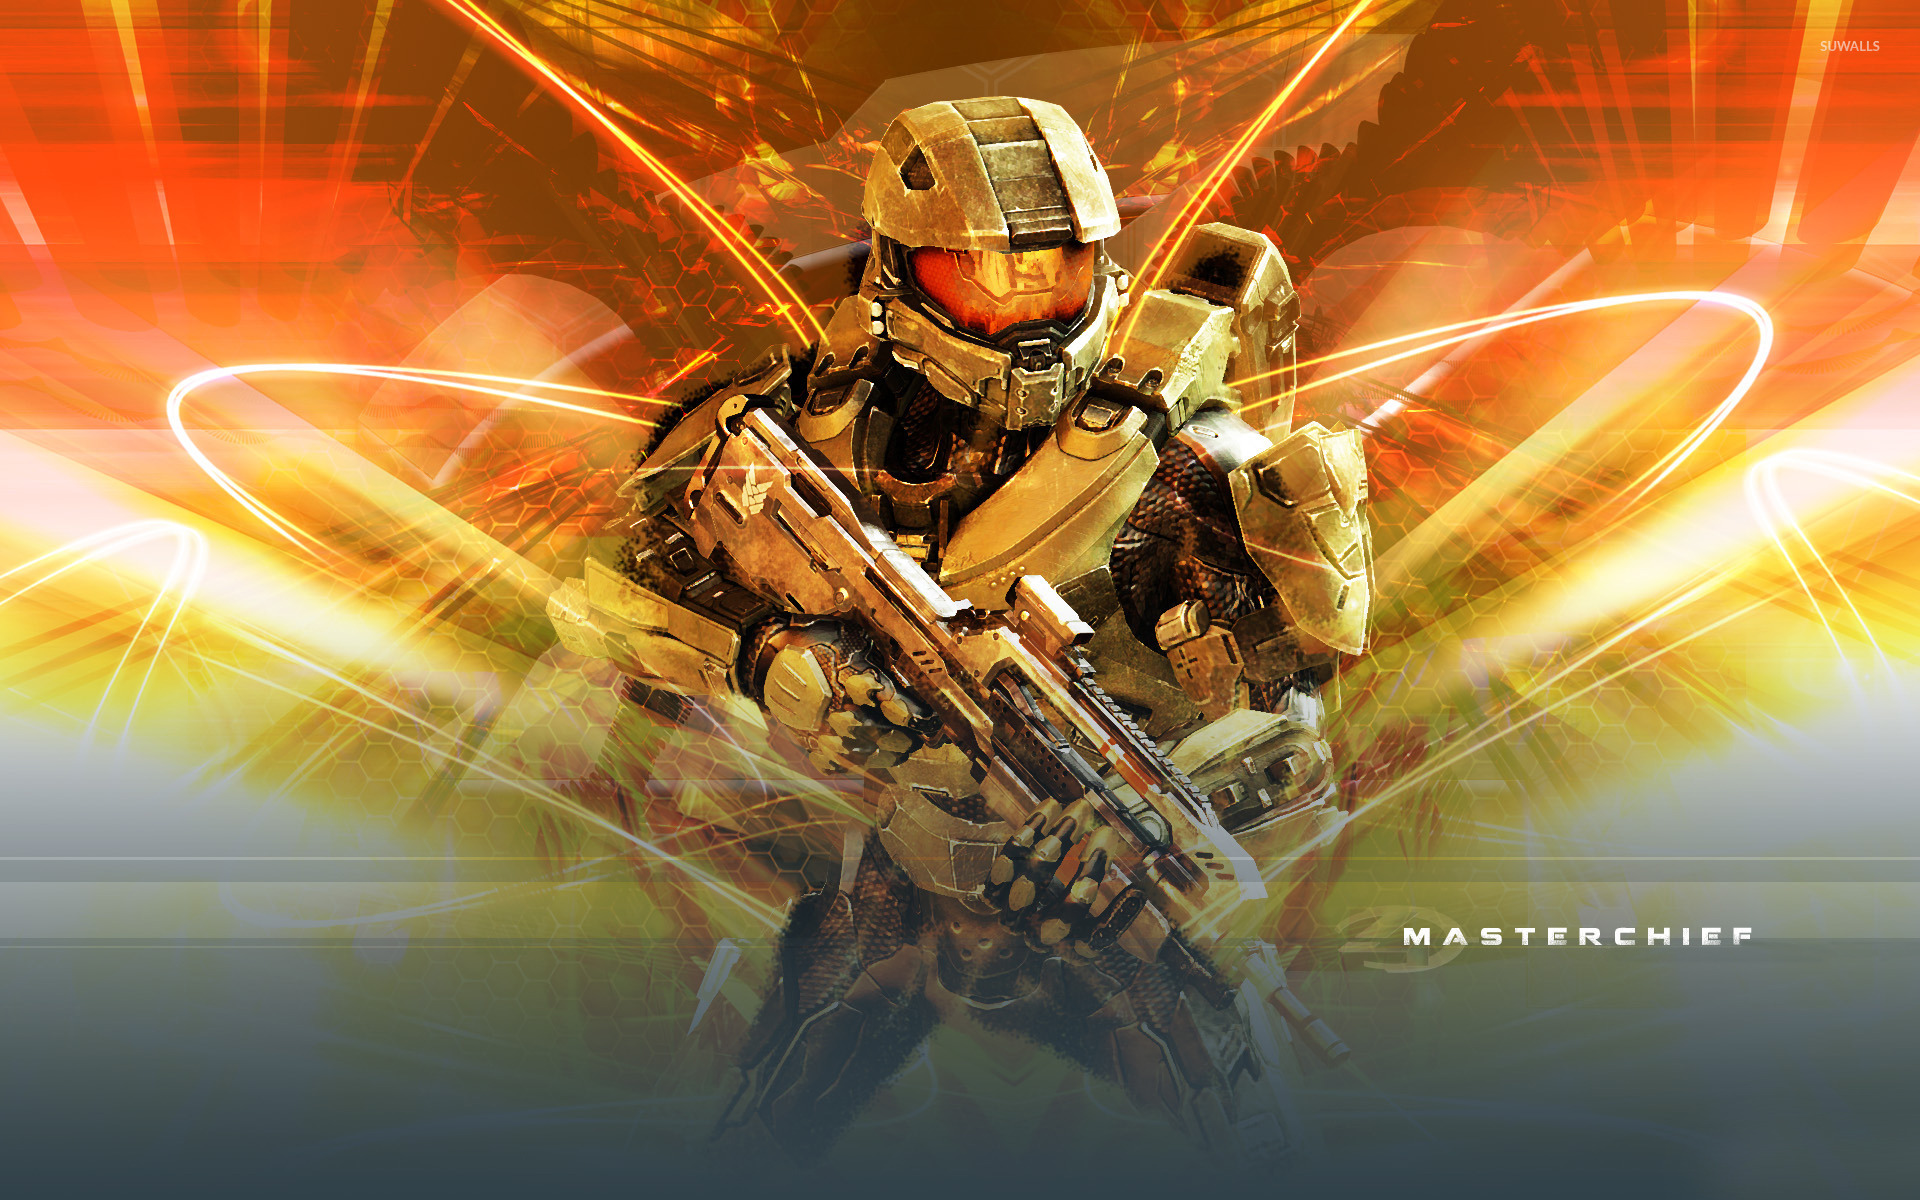 Halo 4 8 Wallpaper Game Wallpapers 18190